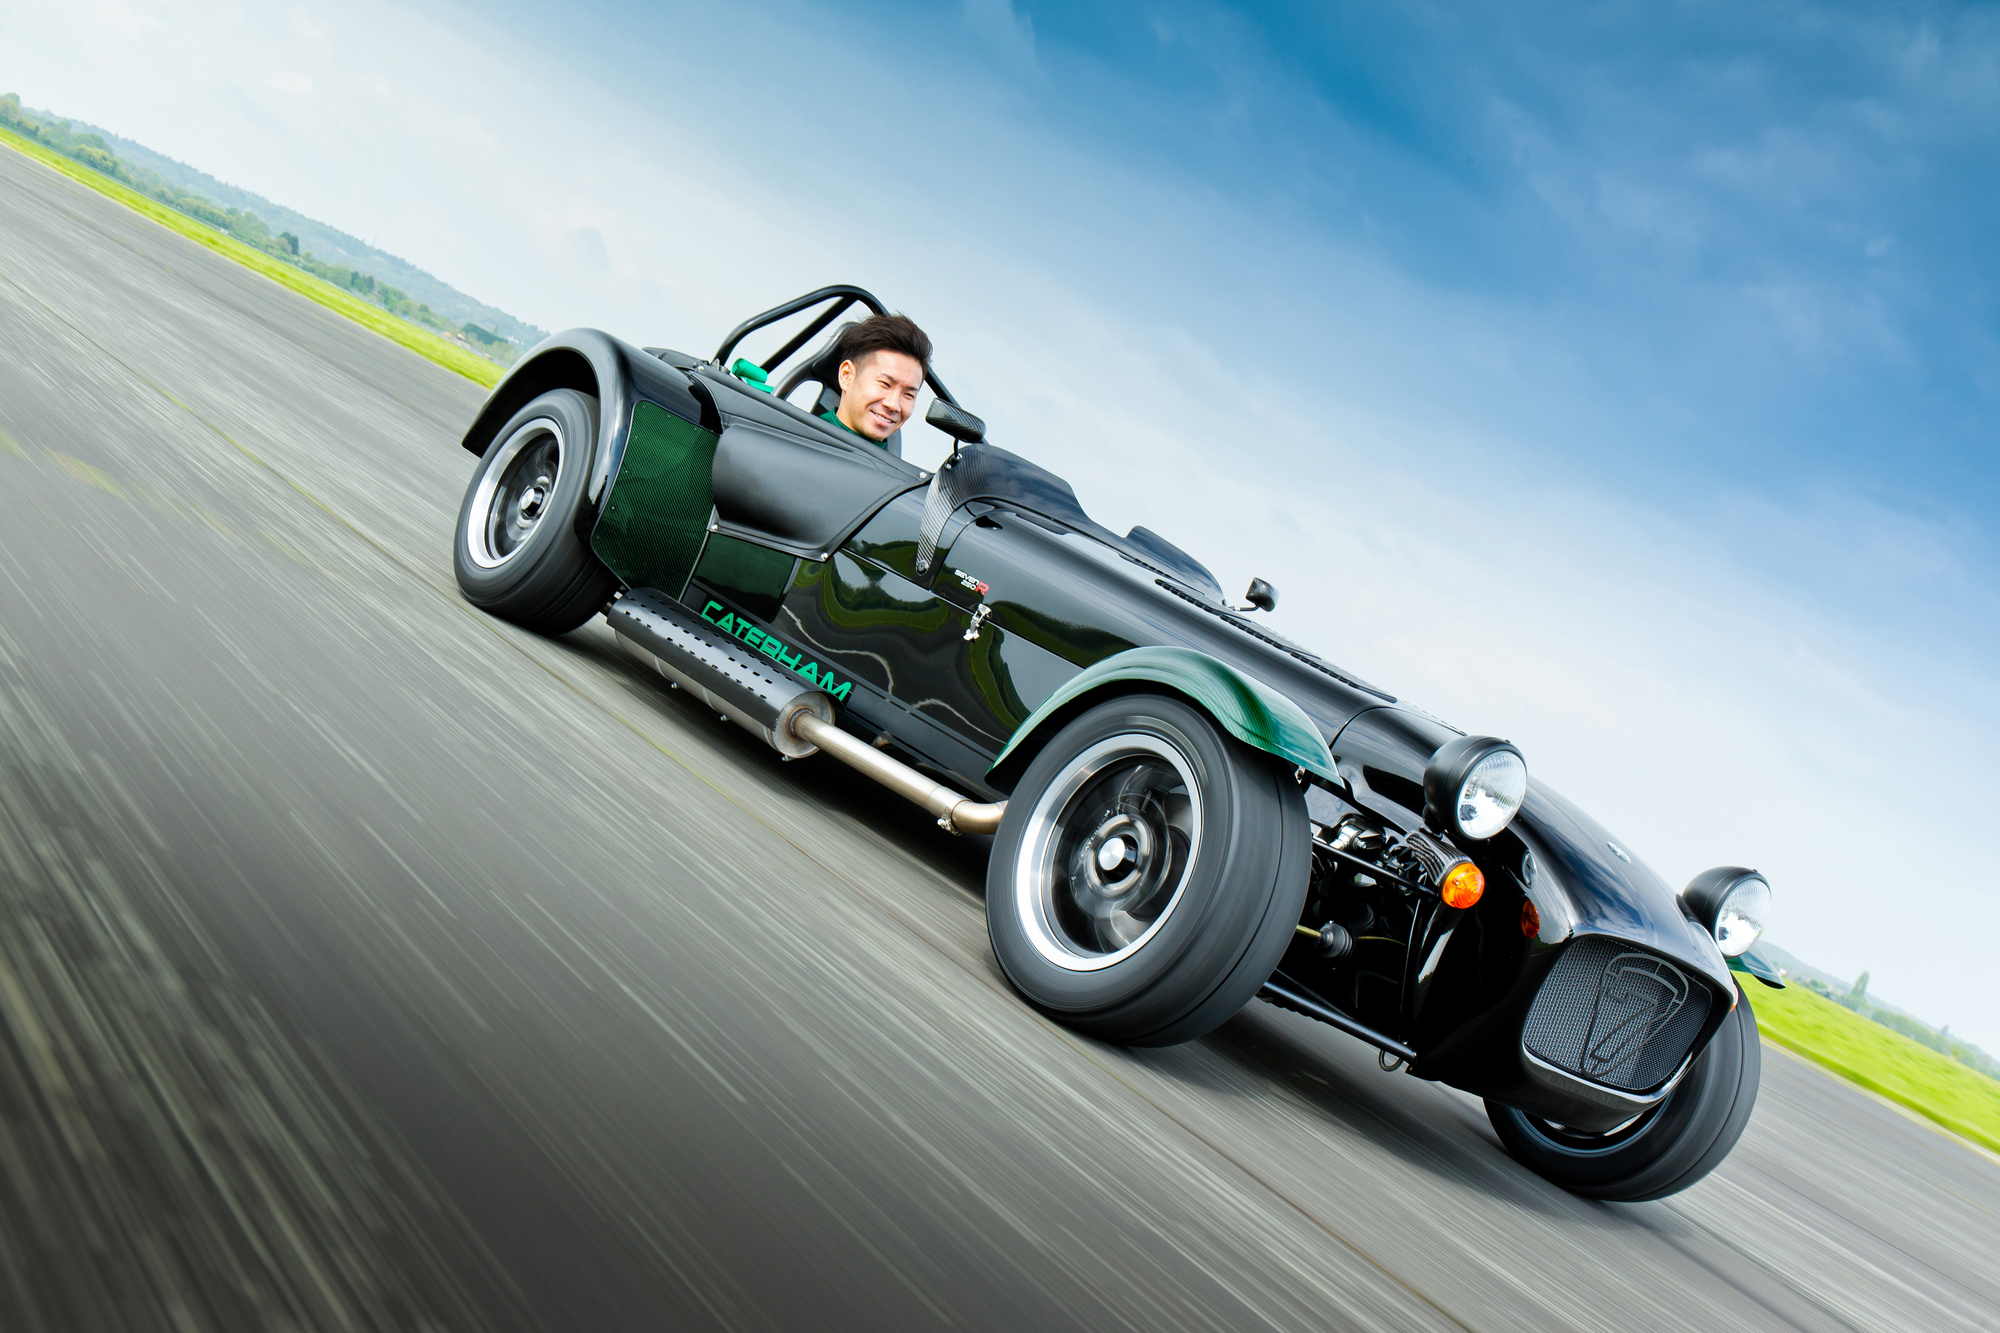 The Seven by Kamui Kobayashi was designed with the help of the Japanese F1 driver of team Caterham